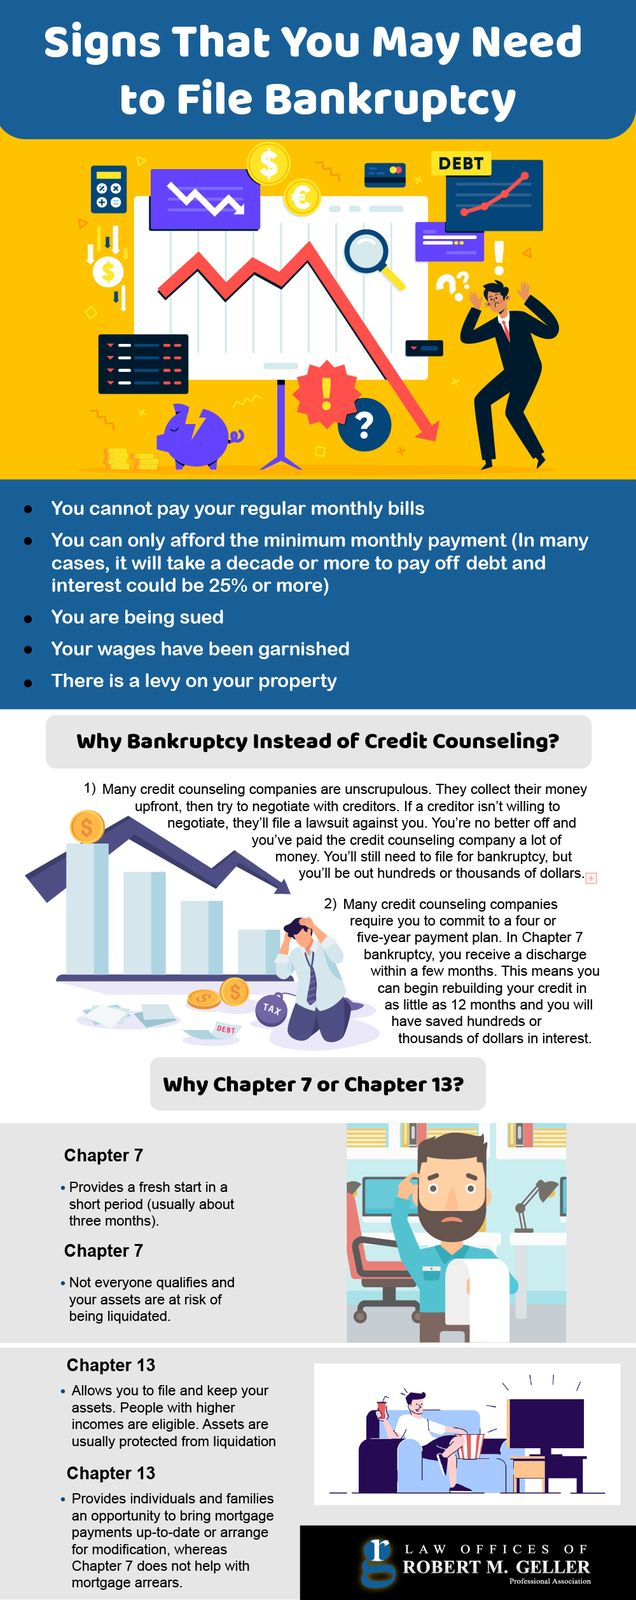 Signs That You May Need to File Bankruptcy St Petersburg, Pasco, And Tampa Florida.